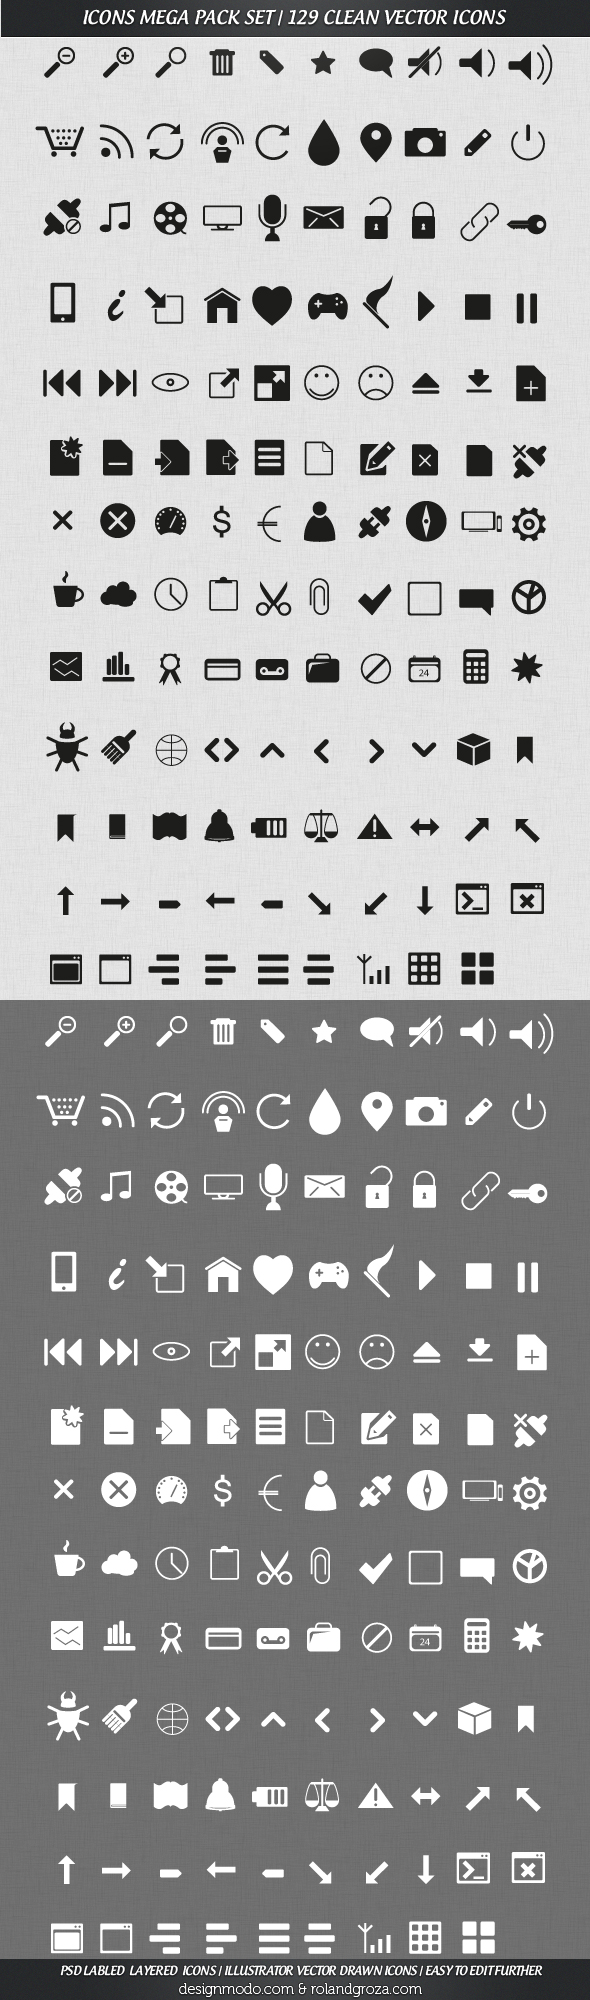 The best free Mega vector images  Download from 66 free vectors of